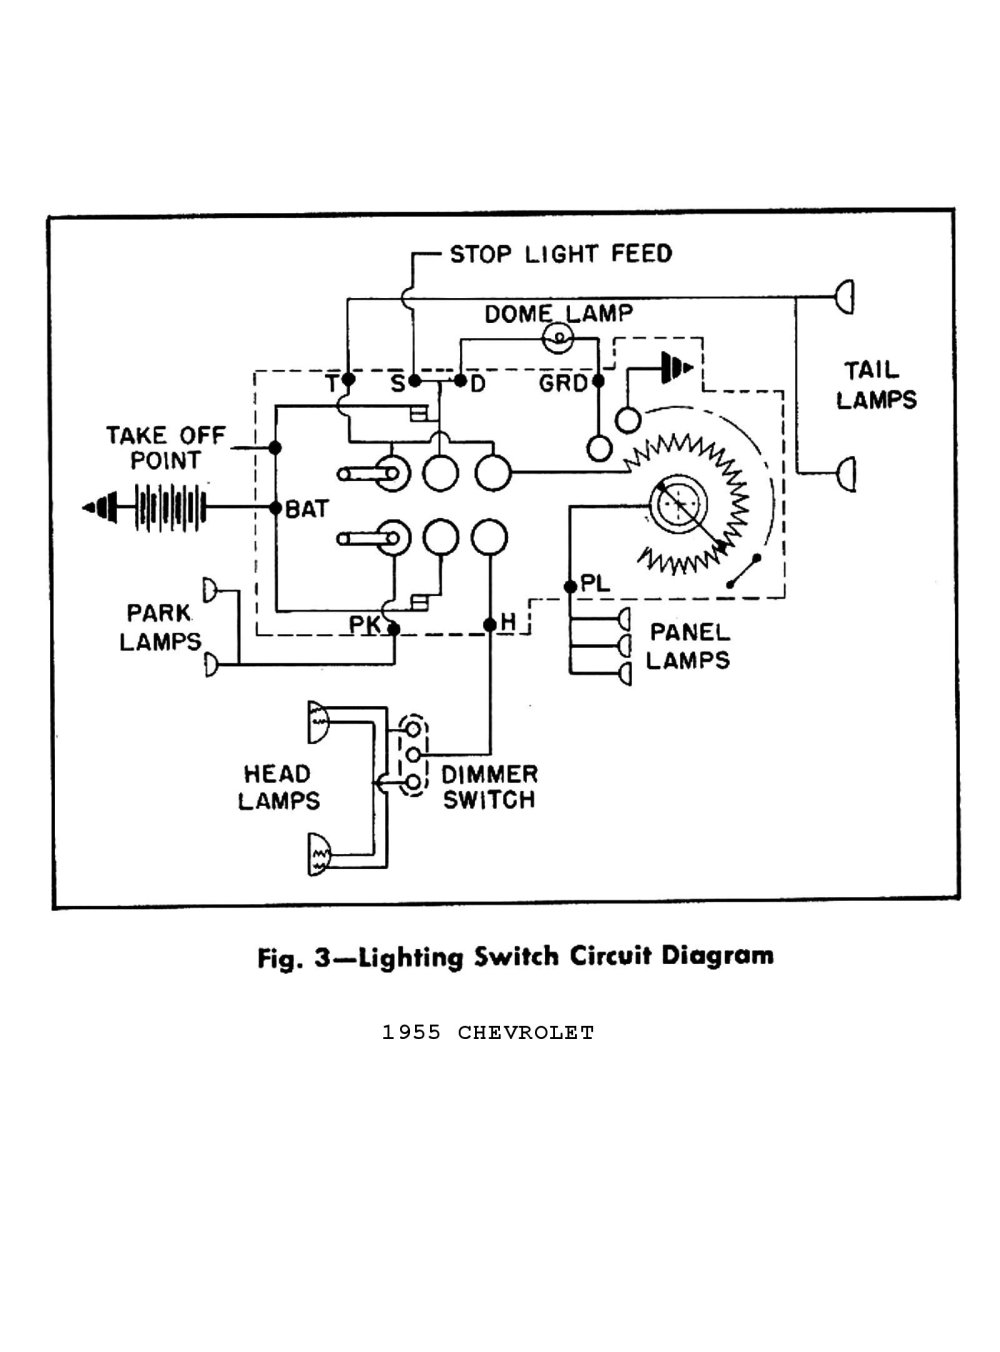 medium resolution of gm steering column dimmer switch wiring diagram schematic wiring rh 30 koch foerderbandtrommeln de mymopar wiring